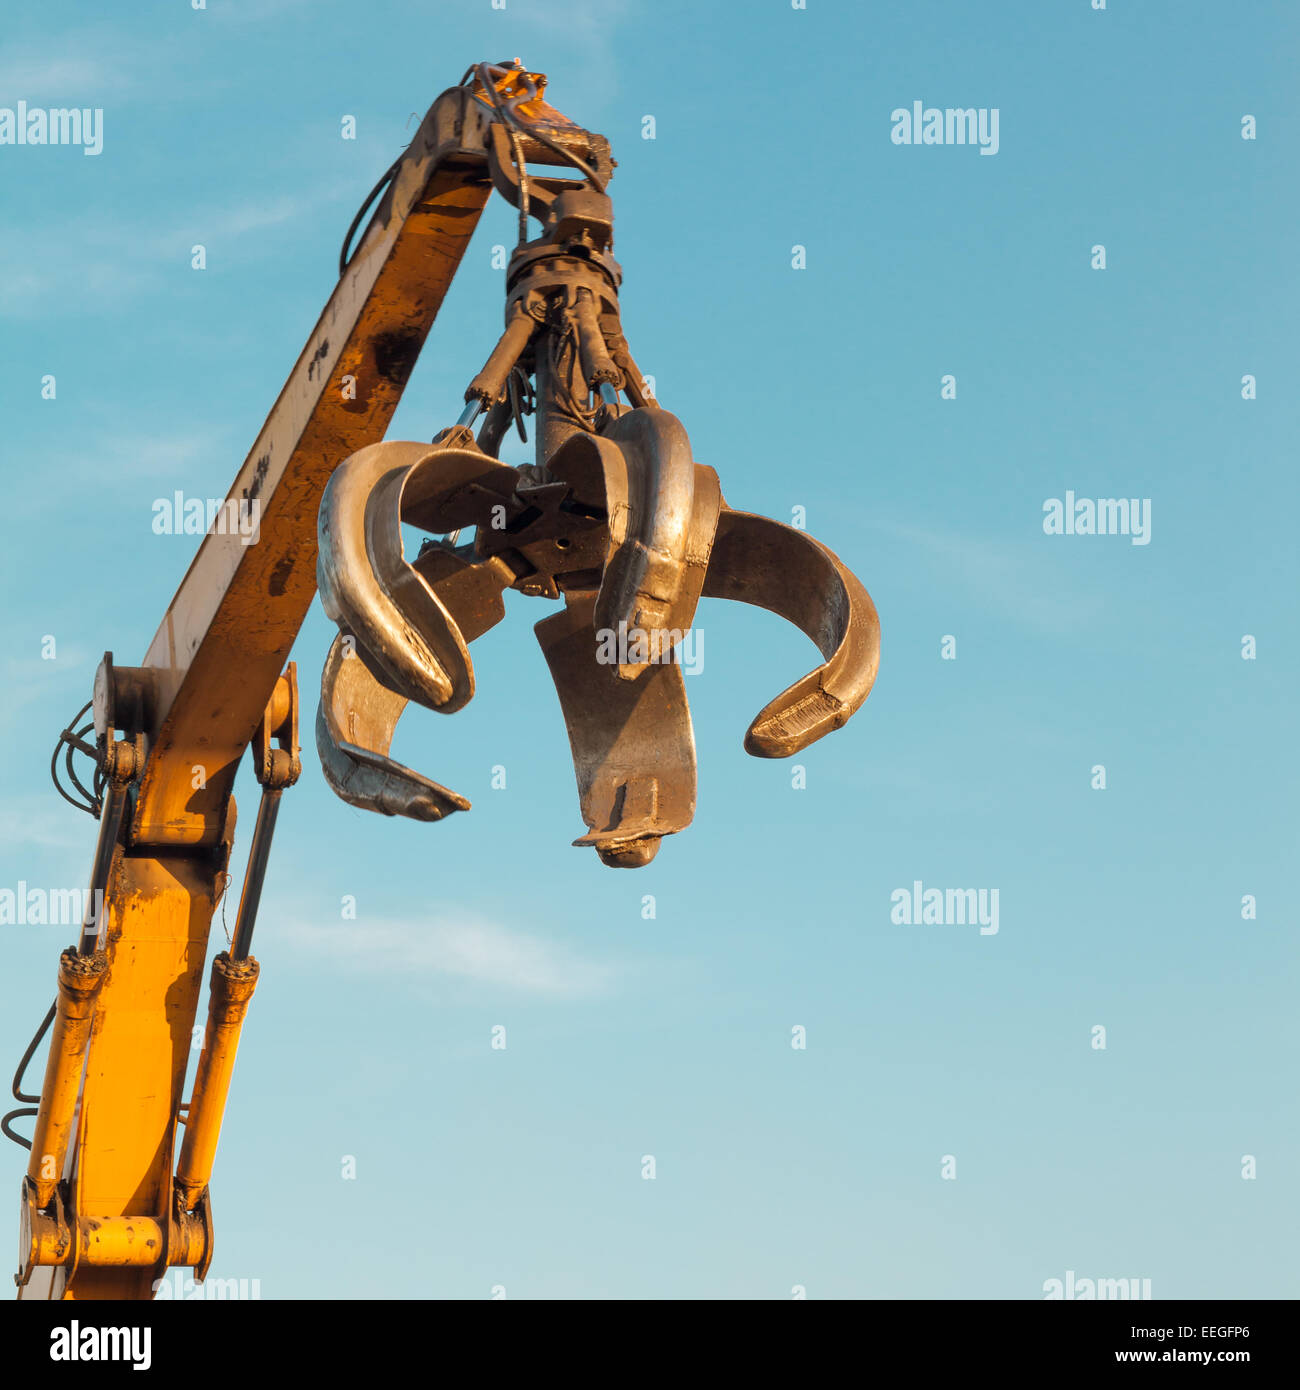 crane arm with open claw on clear blue sky - Stock Image